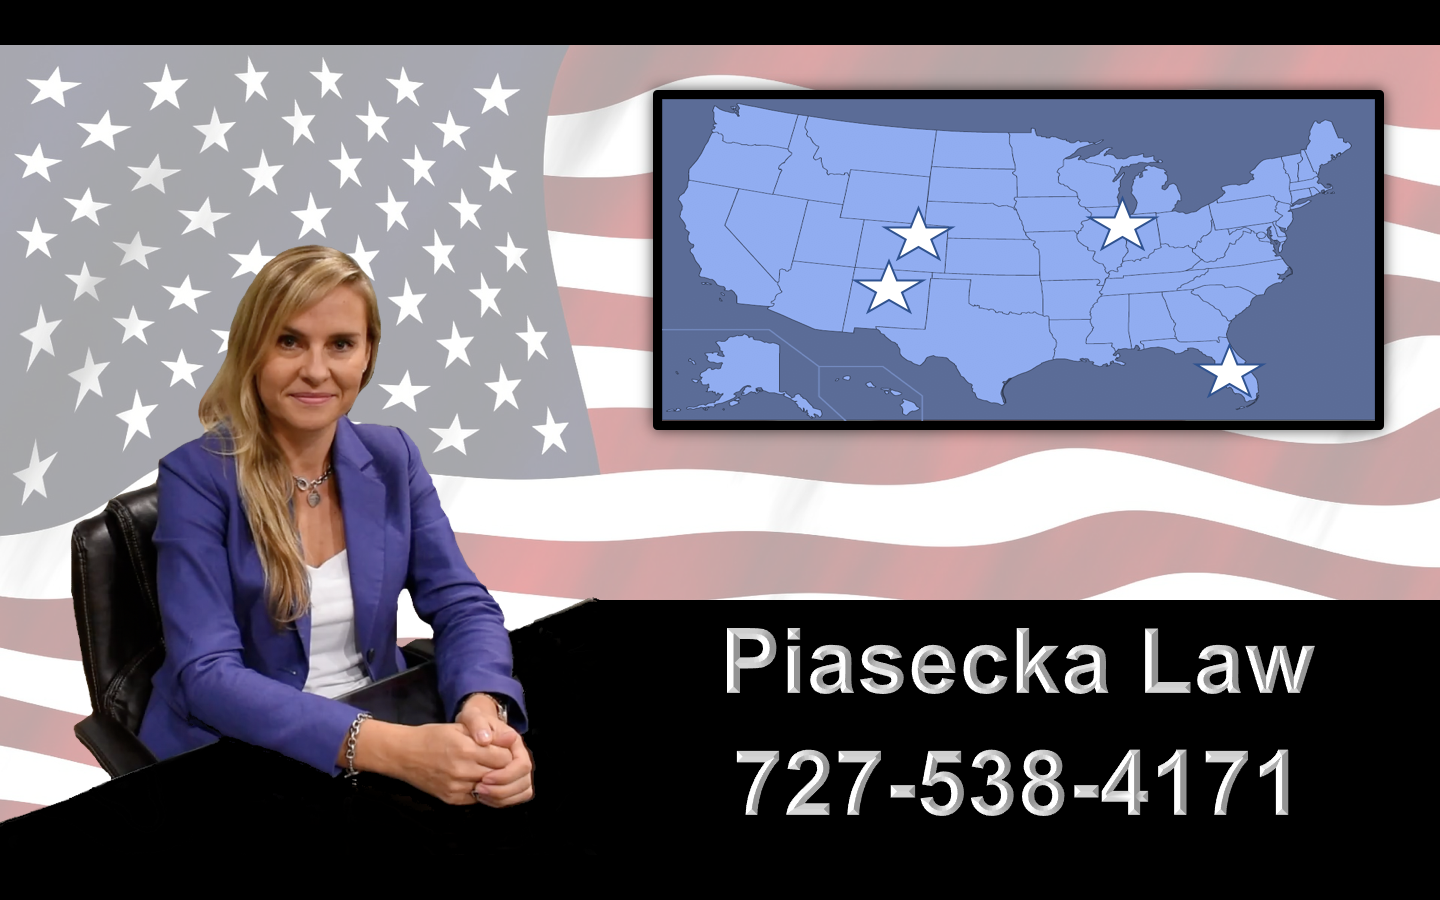 immigration-attorney-largo-usa-agnieszka-aga-piasecka-law